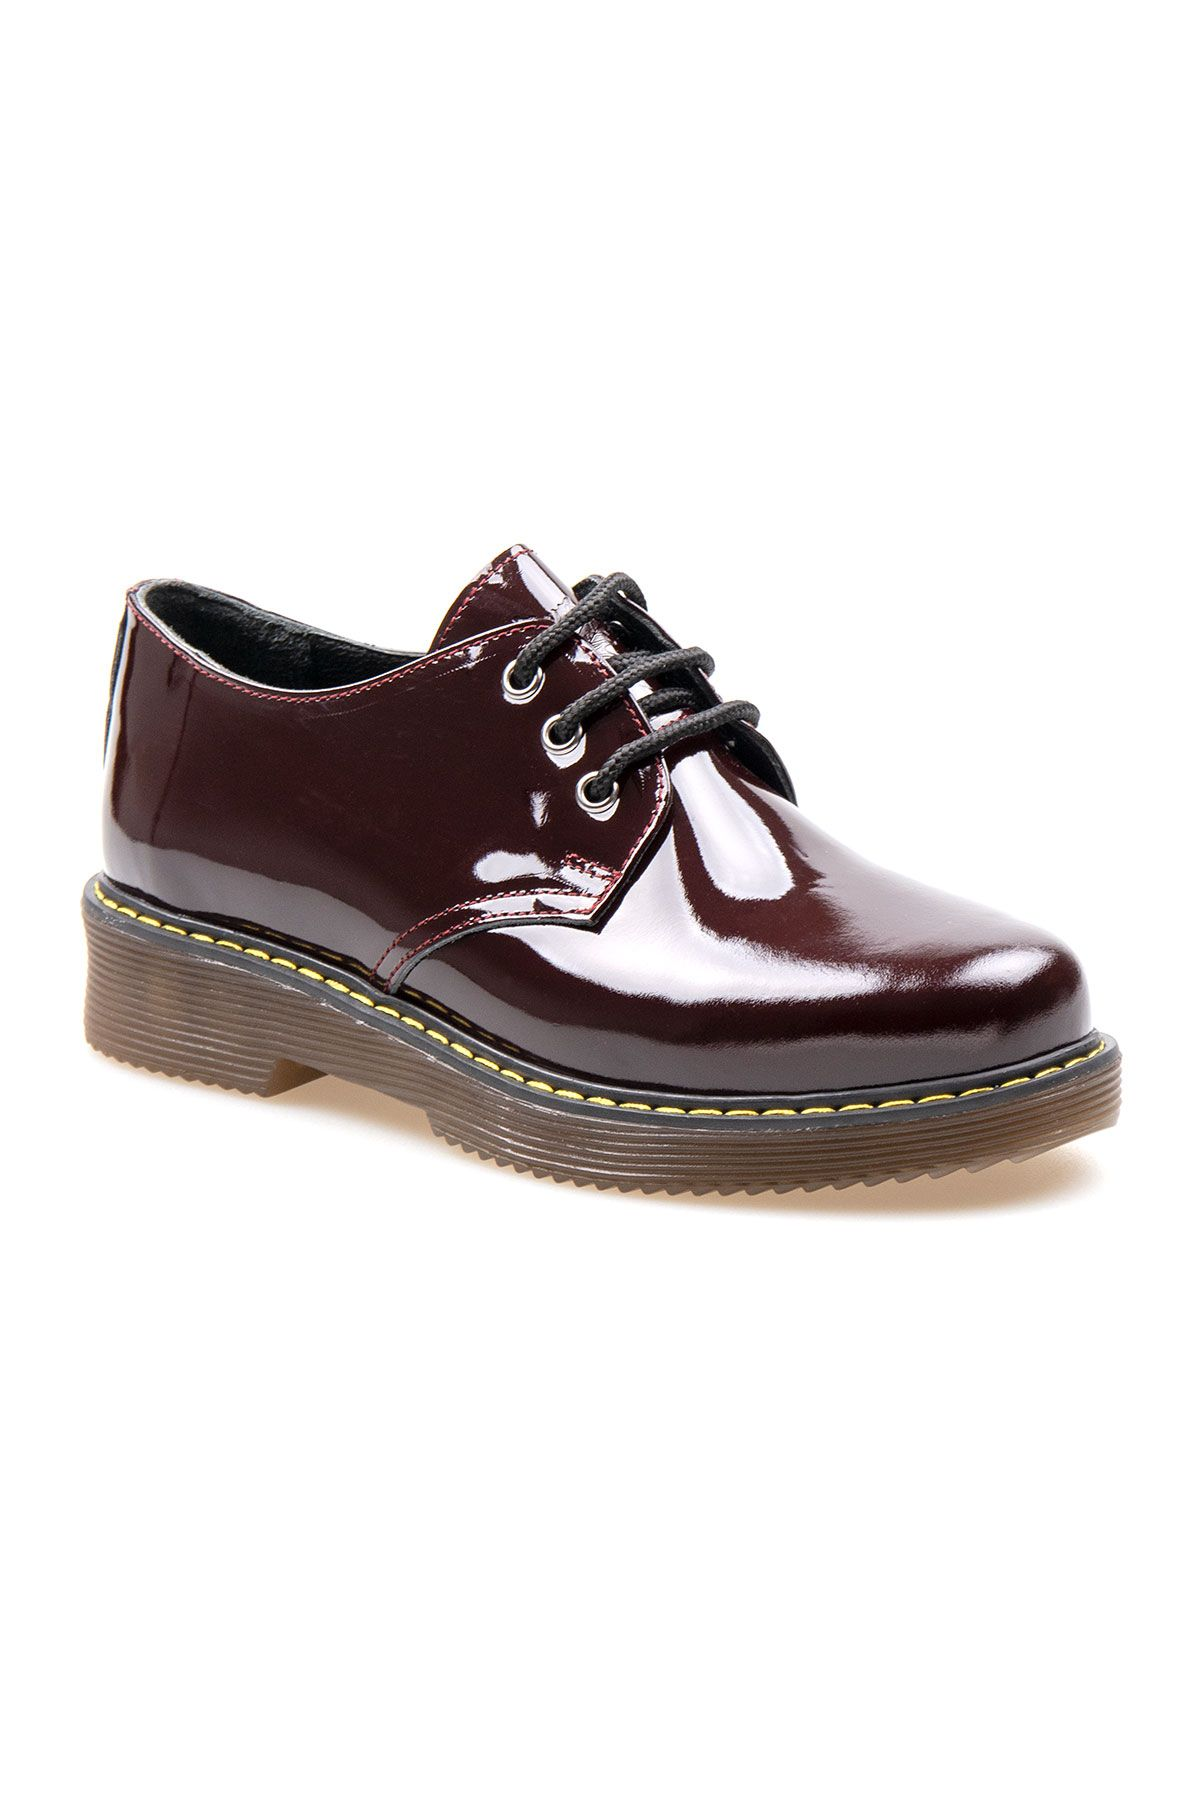 Pegia Genuine Patent Leather Women's Shoes 500703 Claret red